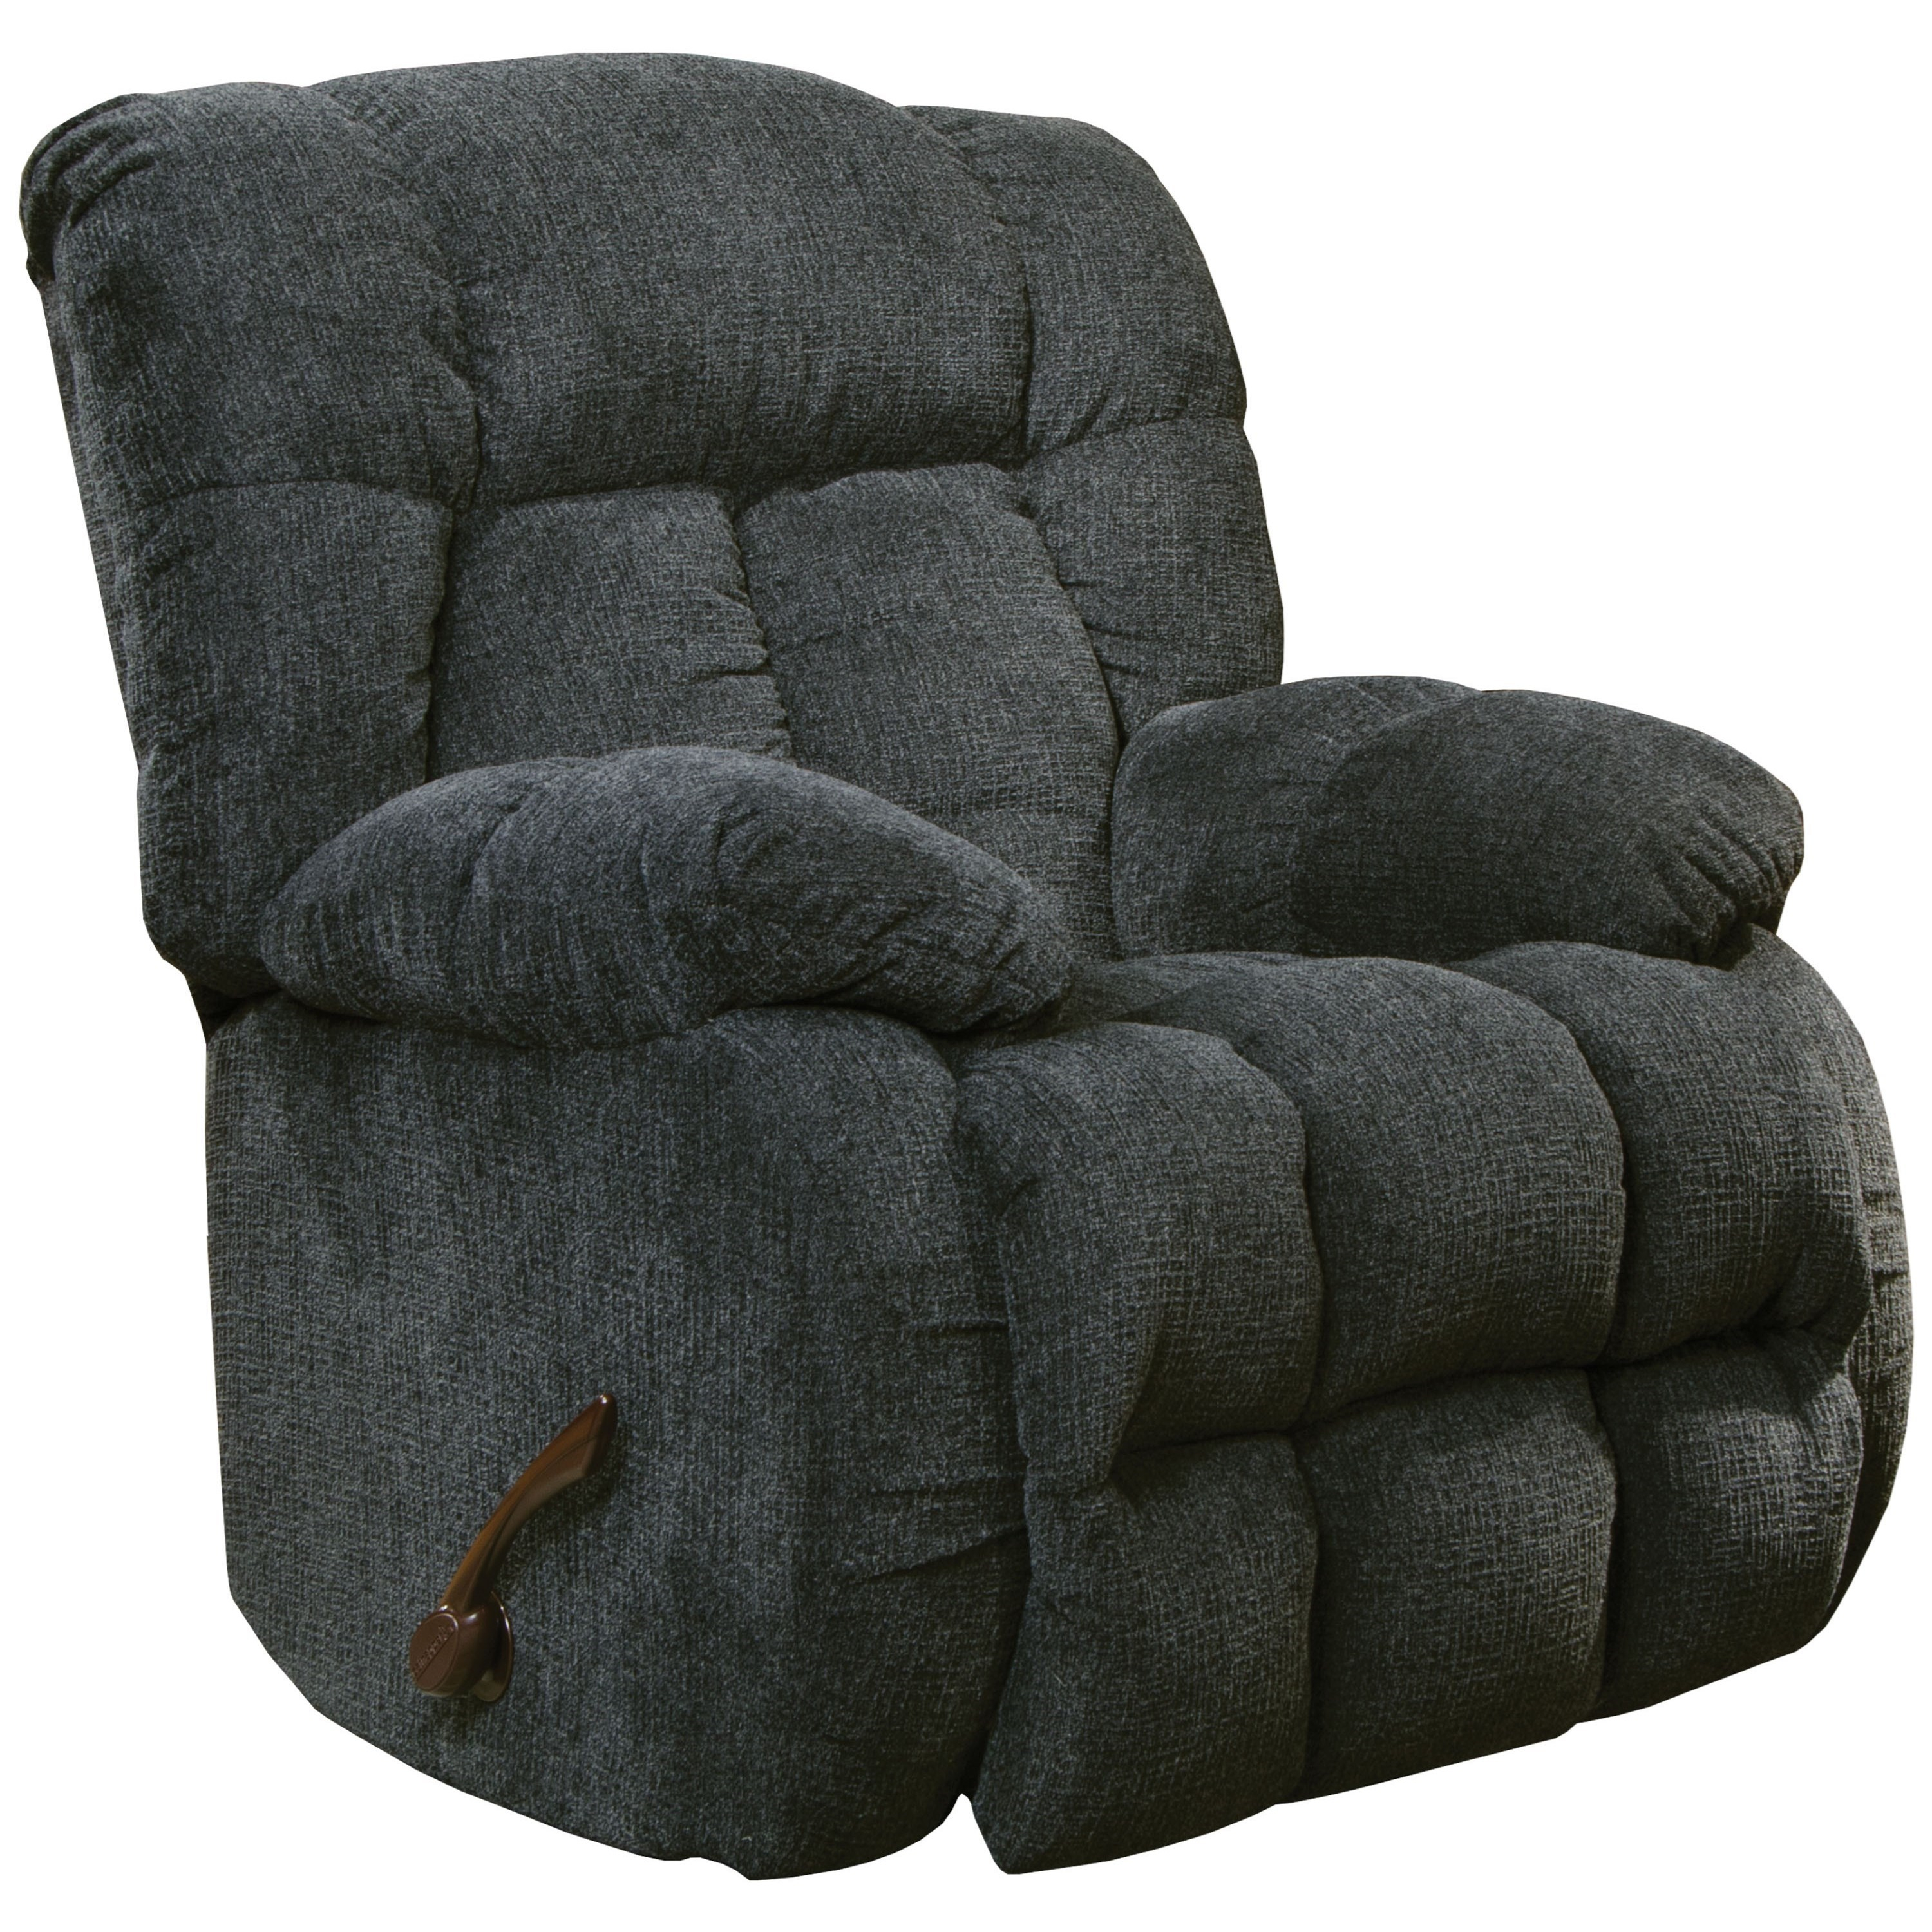 Catnapper Motion Chairs And Recliners 4774-2 Brody Rocker Recliner pertaining to Gibson Swivel Cuddler Chairs